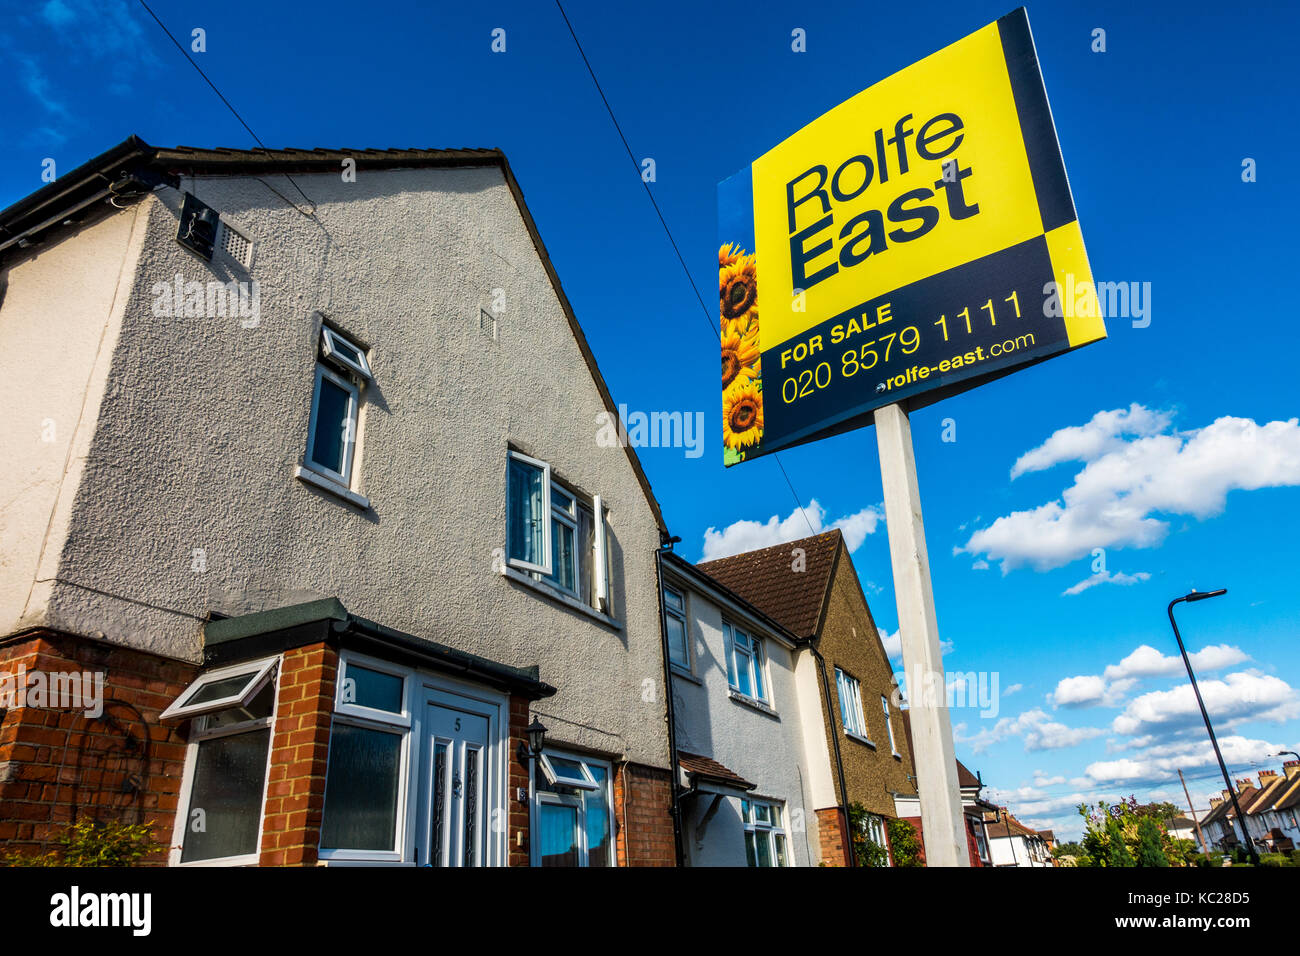 House with a For Sale board outside, via Rolfe East - a local estate agent - in South Ealing, London W5, England, - Stock Image